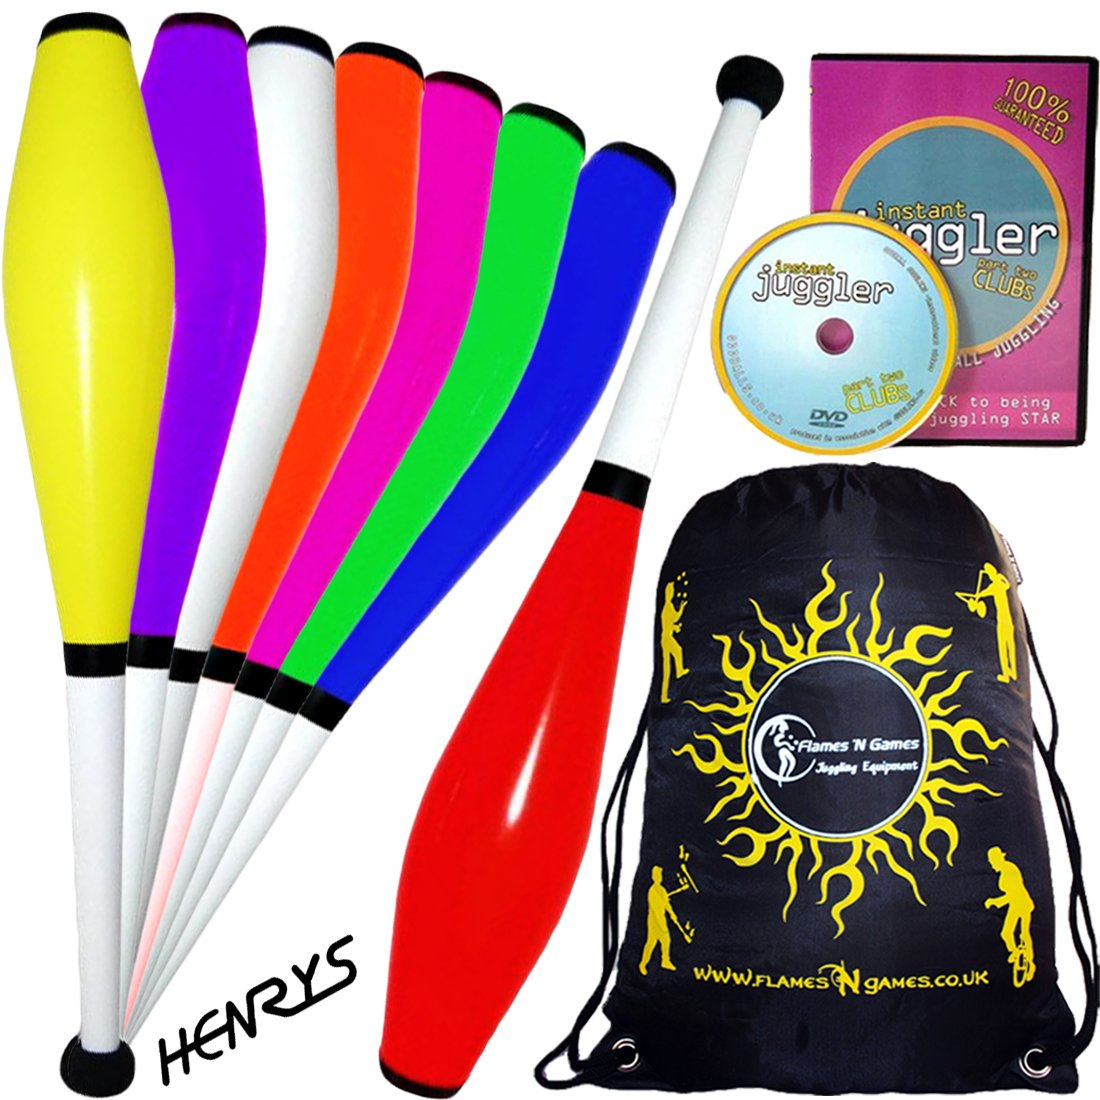 3x HENRYS DELPHIN Pro Juggling Clubs Set of 3 + INSTANT Clubs DVD + Flames N Games Travel Bag! Quality Training Juggling Club Ideal For Number Juggling & Passing! (Yellow) by Flames N Games Juggling Clubs